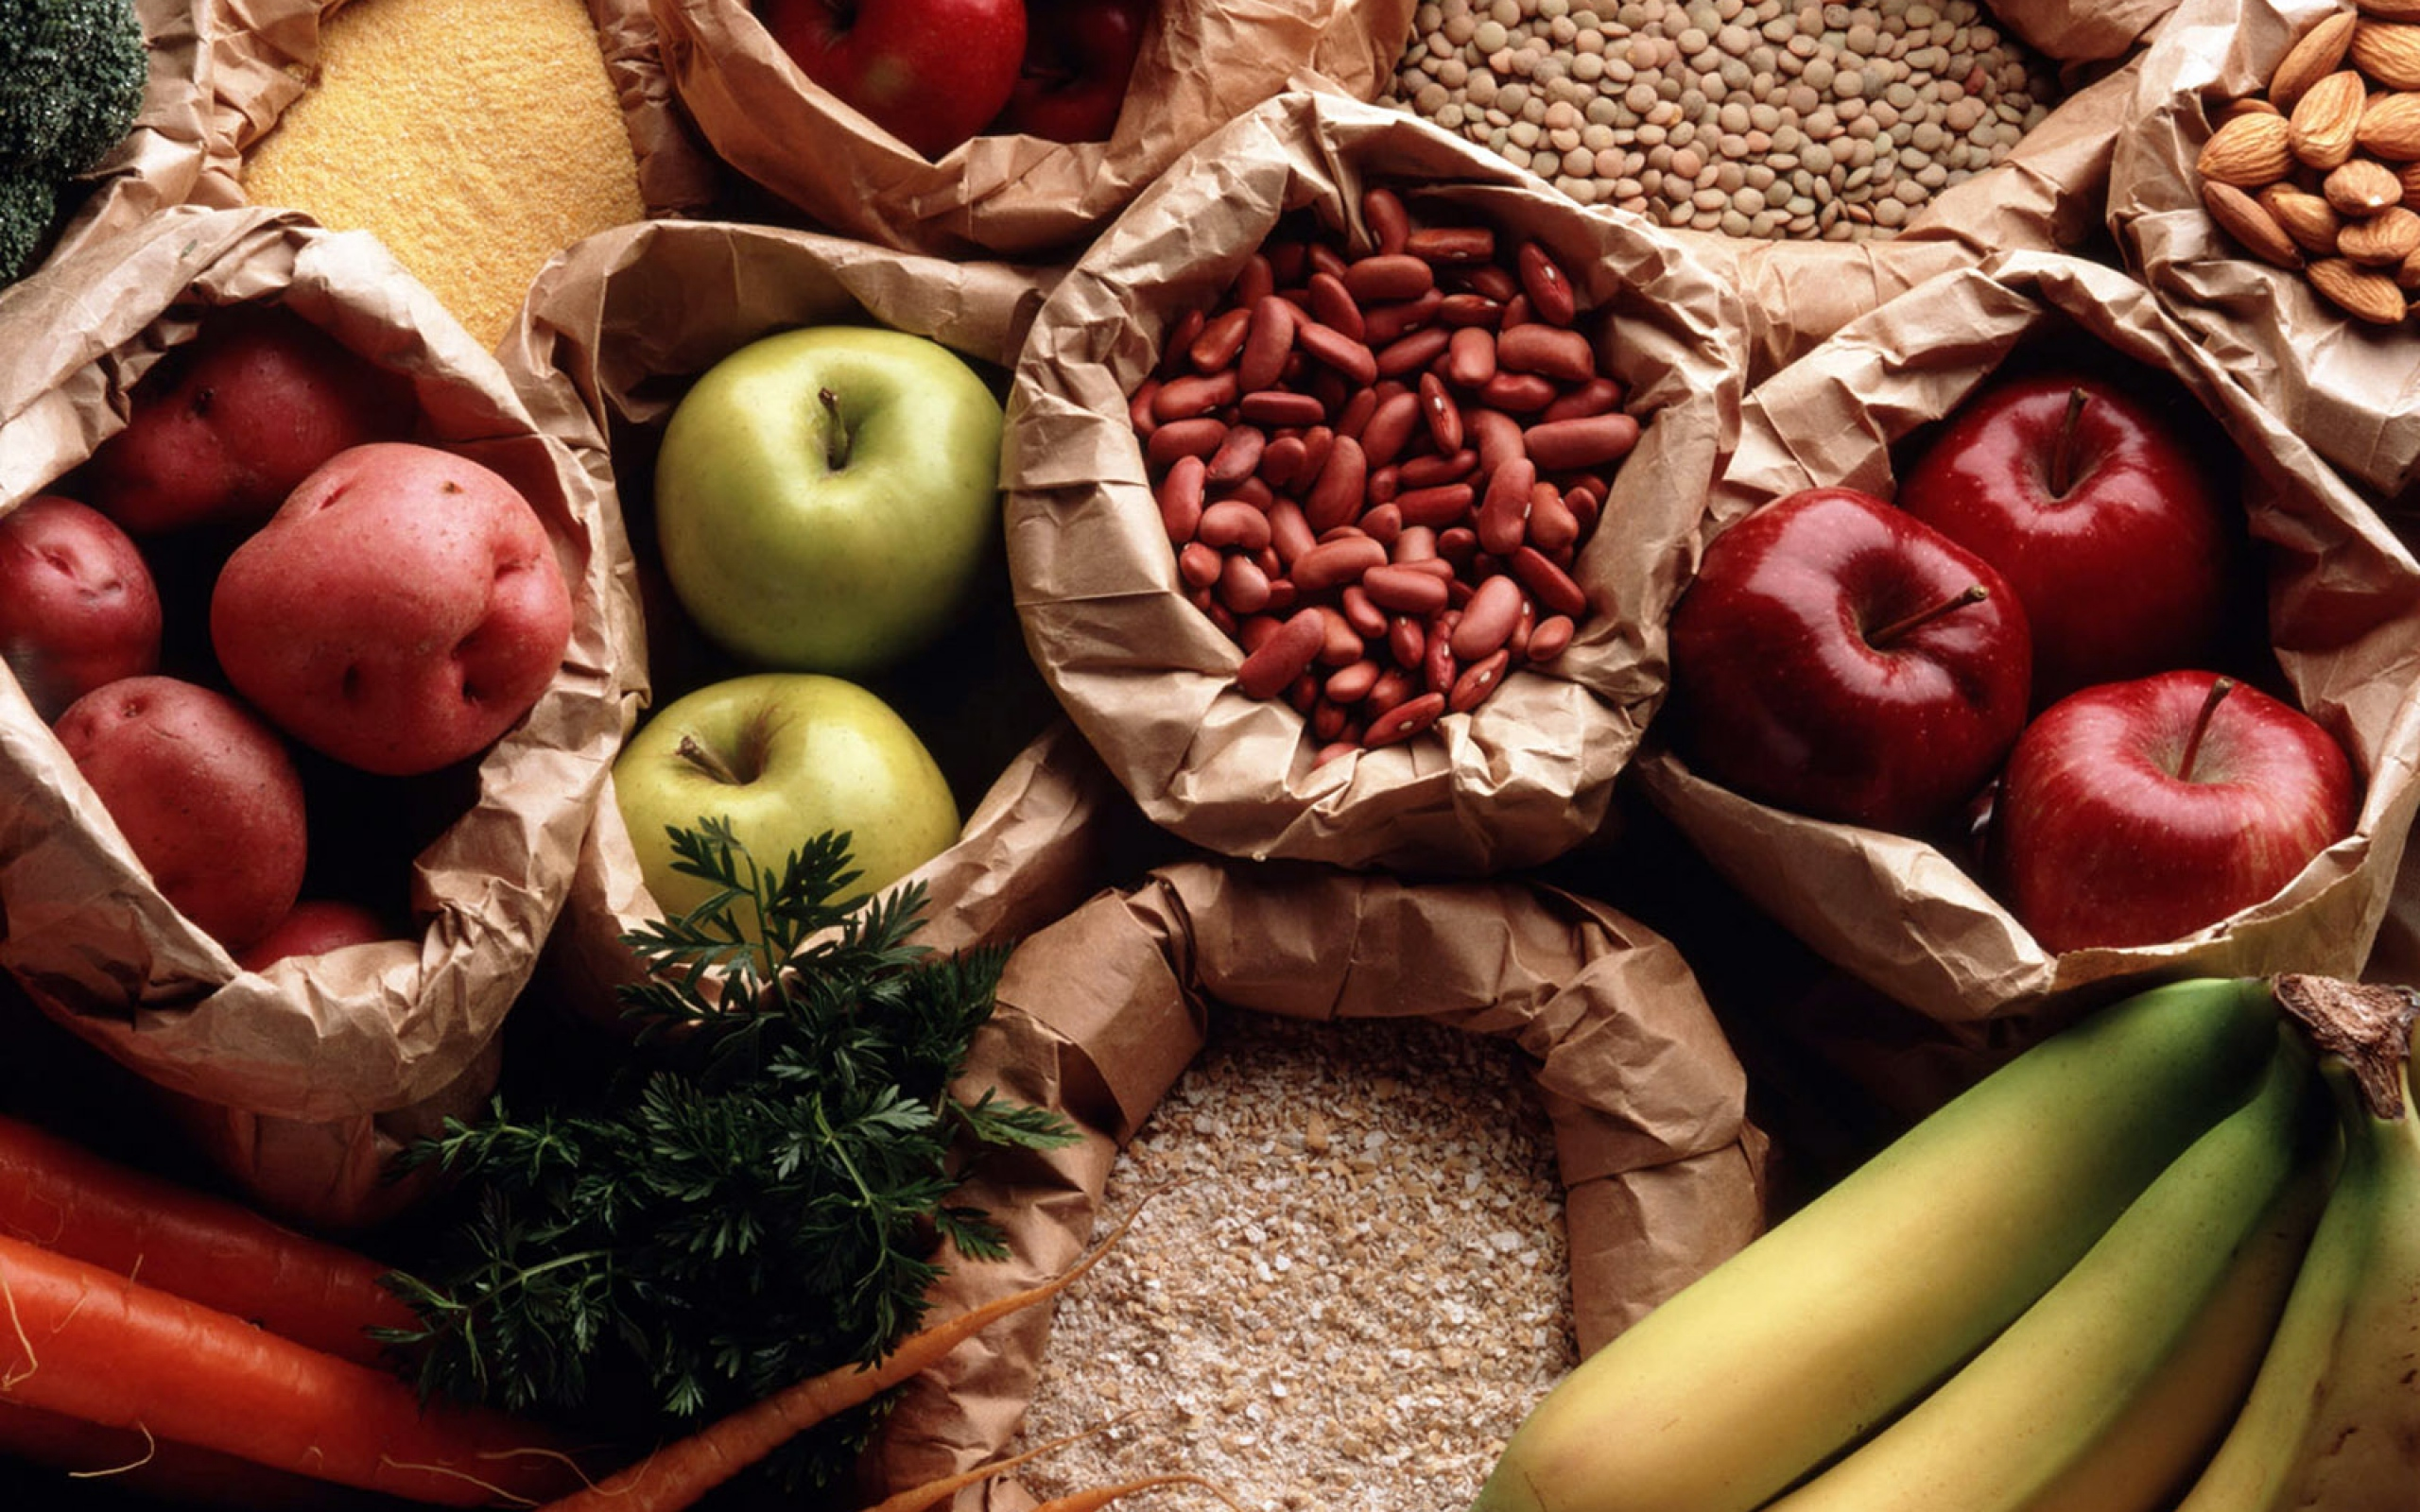 fruit_bags_food_cereals_87857_2560x1440